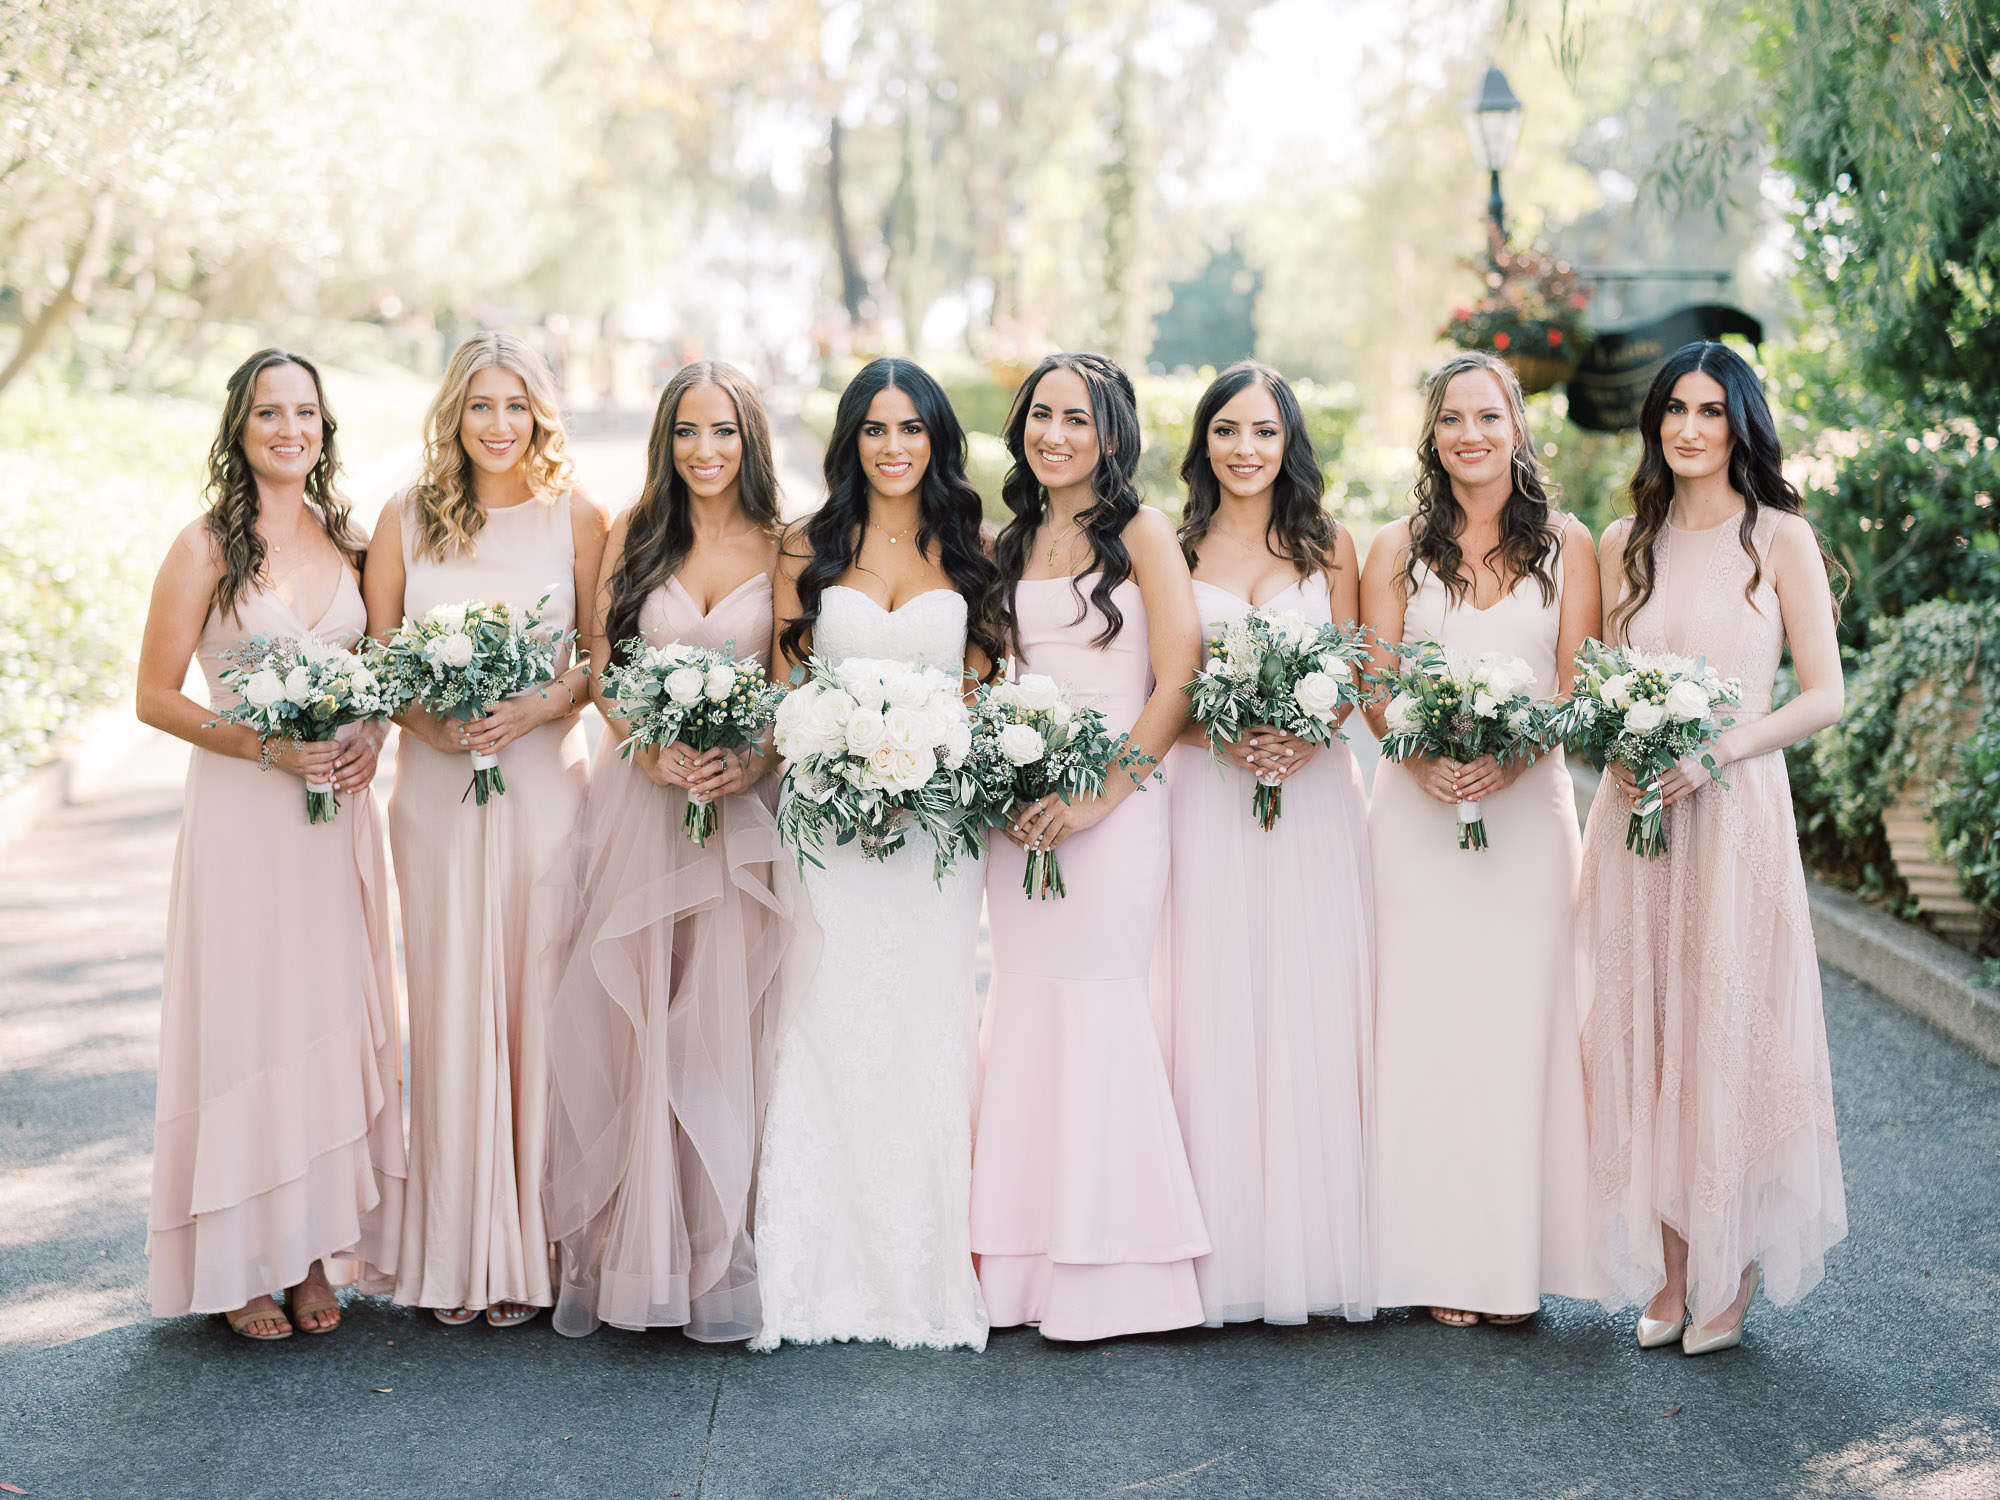 Bridal-Party-Photo-Inspiration